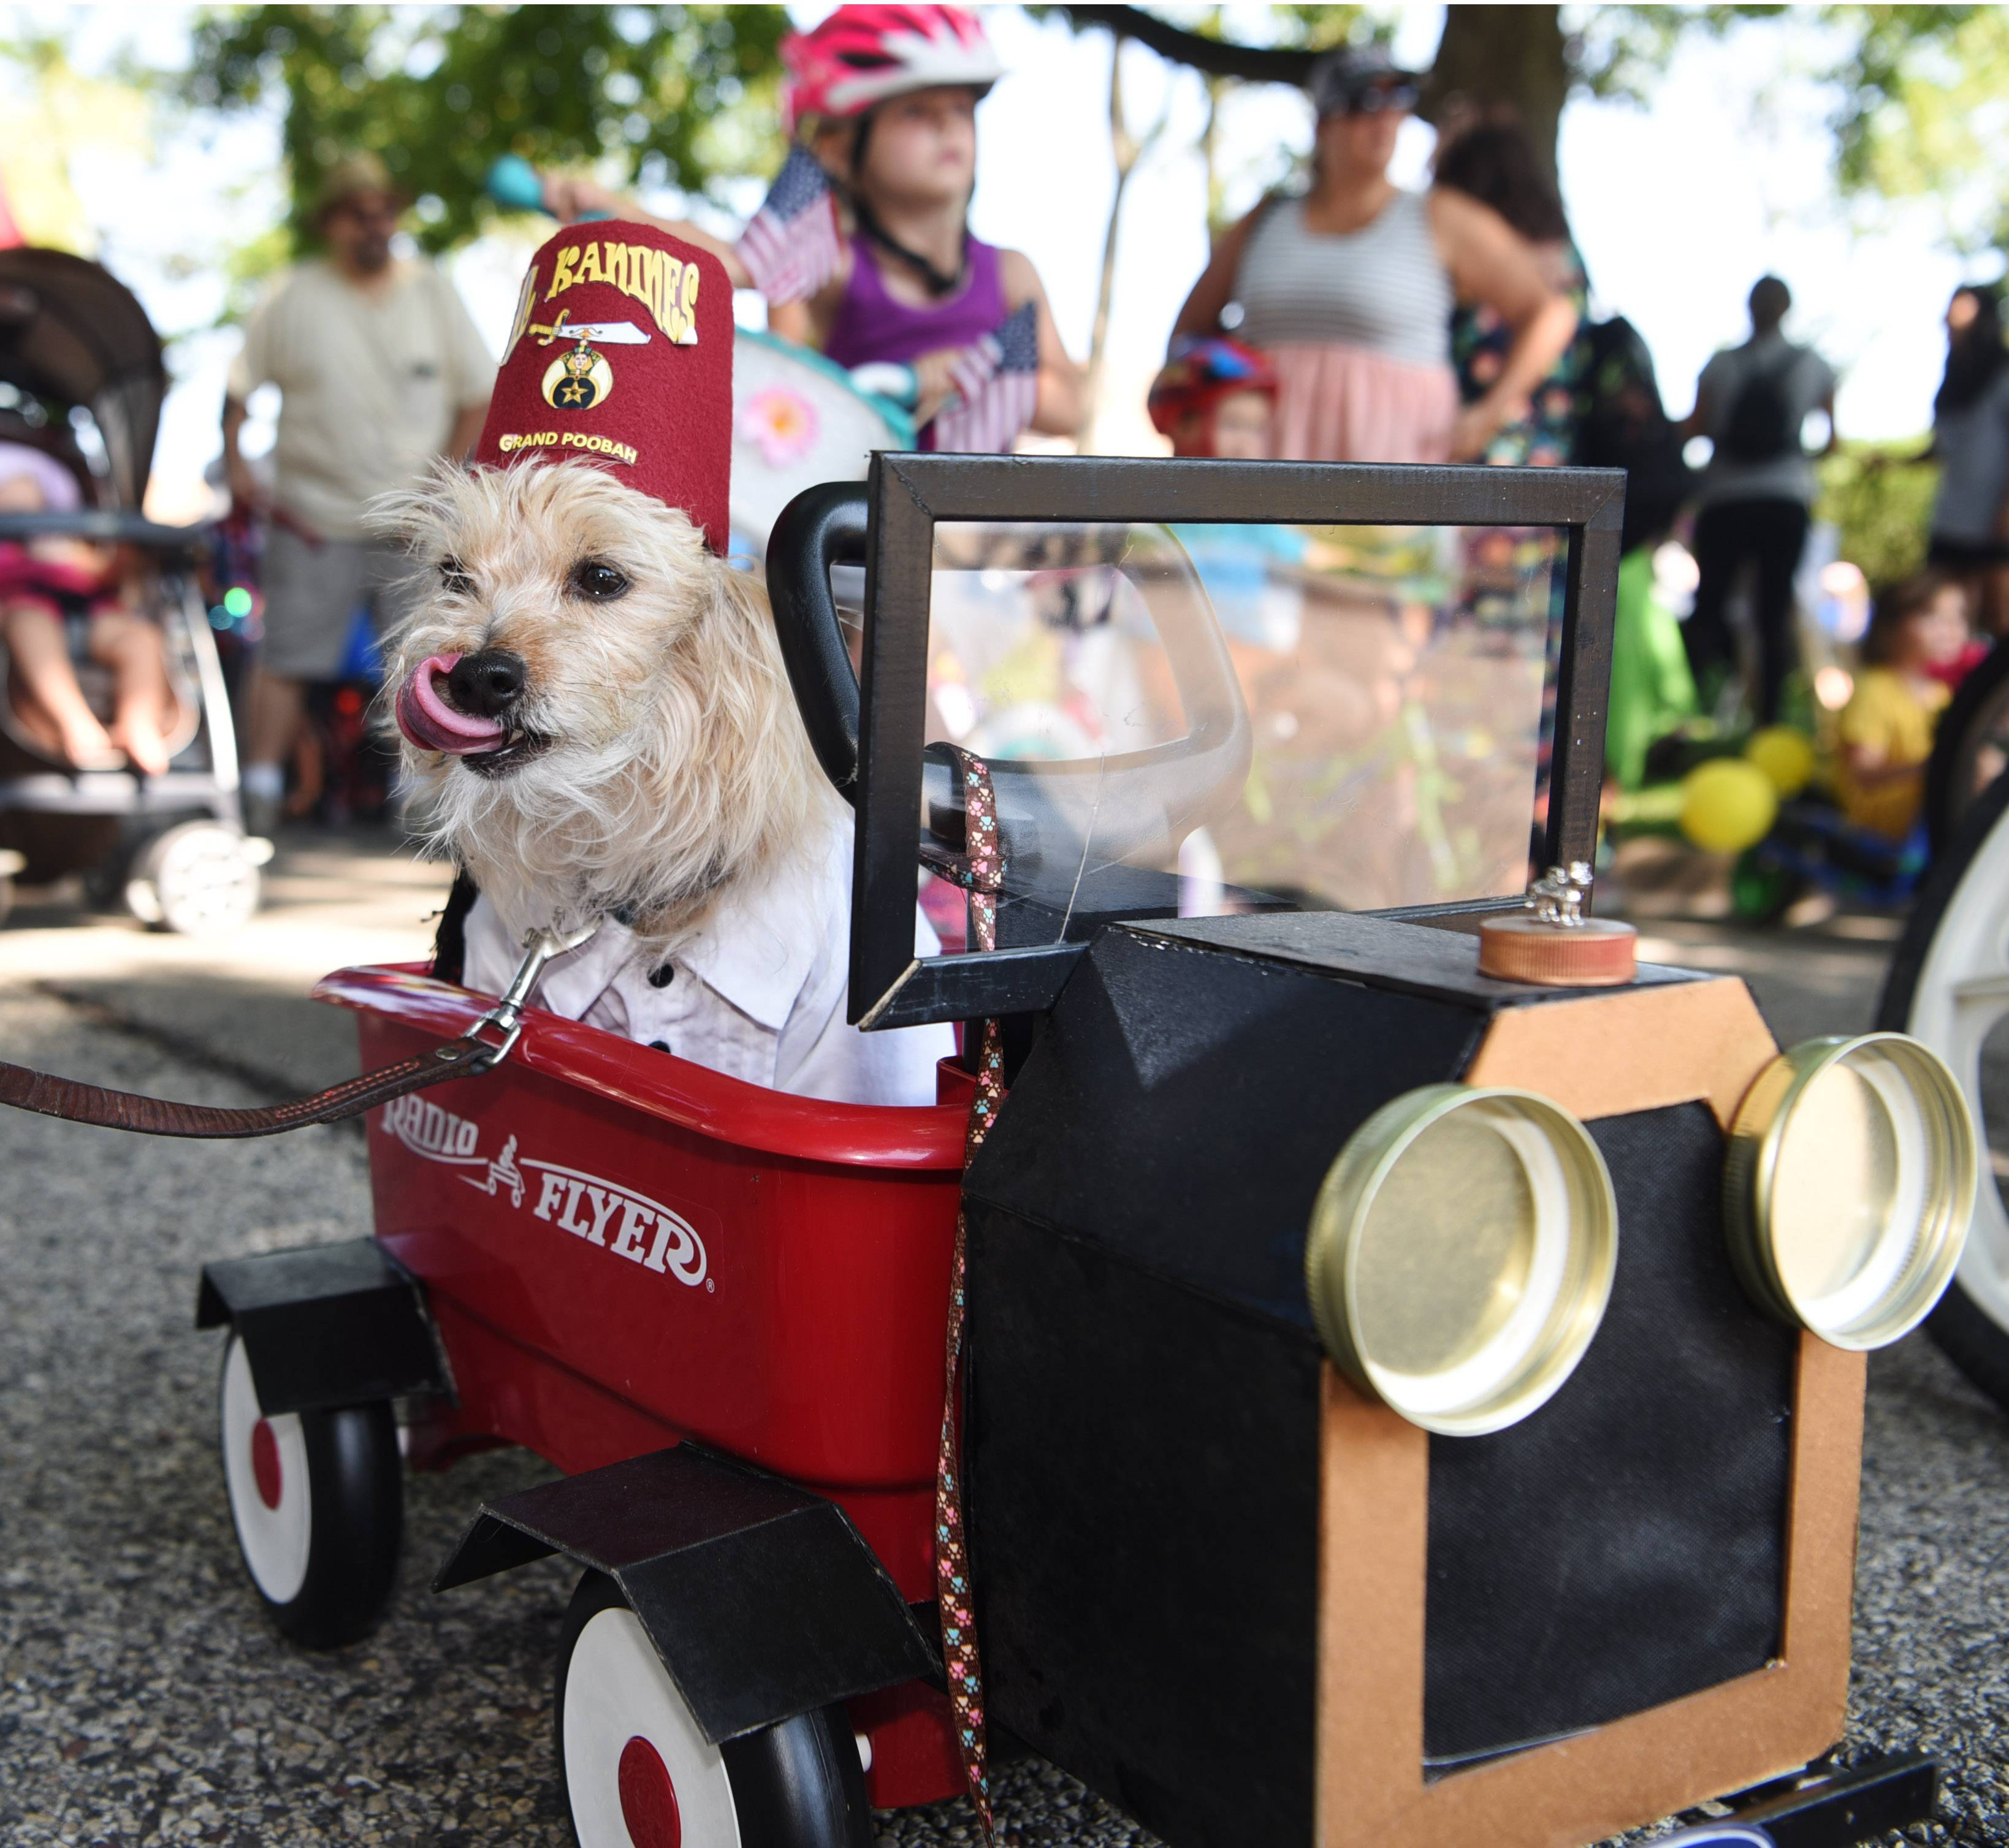 One of the highlights of Grayslake's Summer Days festival, the Bike and Pet Parade will take place at noon Saturday. This year's festival will run from 5 p.m. to midnight Friday, Aug. 17, and noon to midnight Saturday, Aug. 18, in downtown Grayslake.